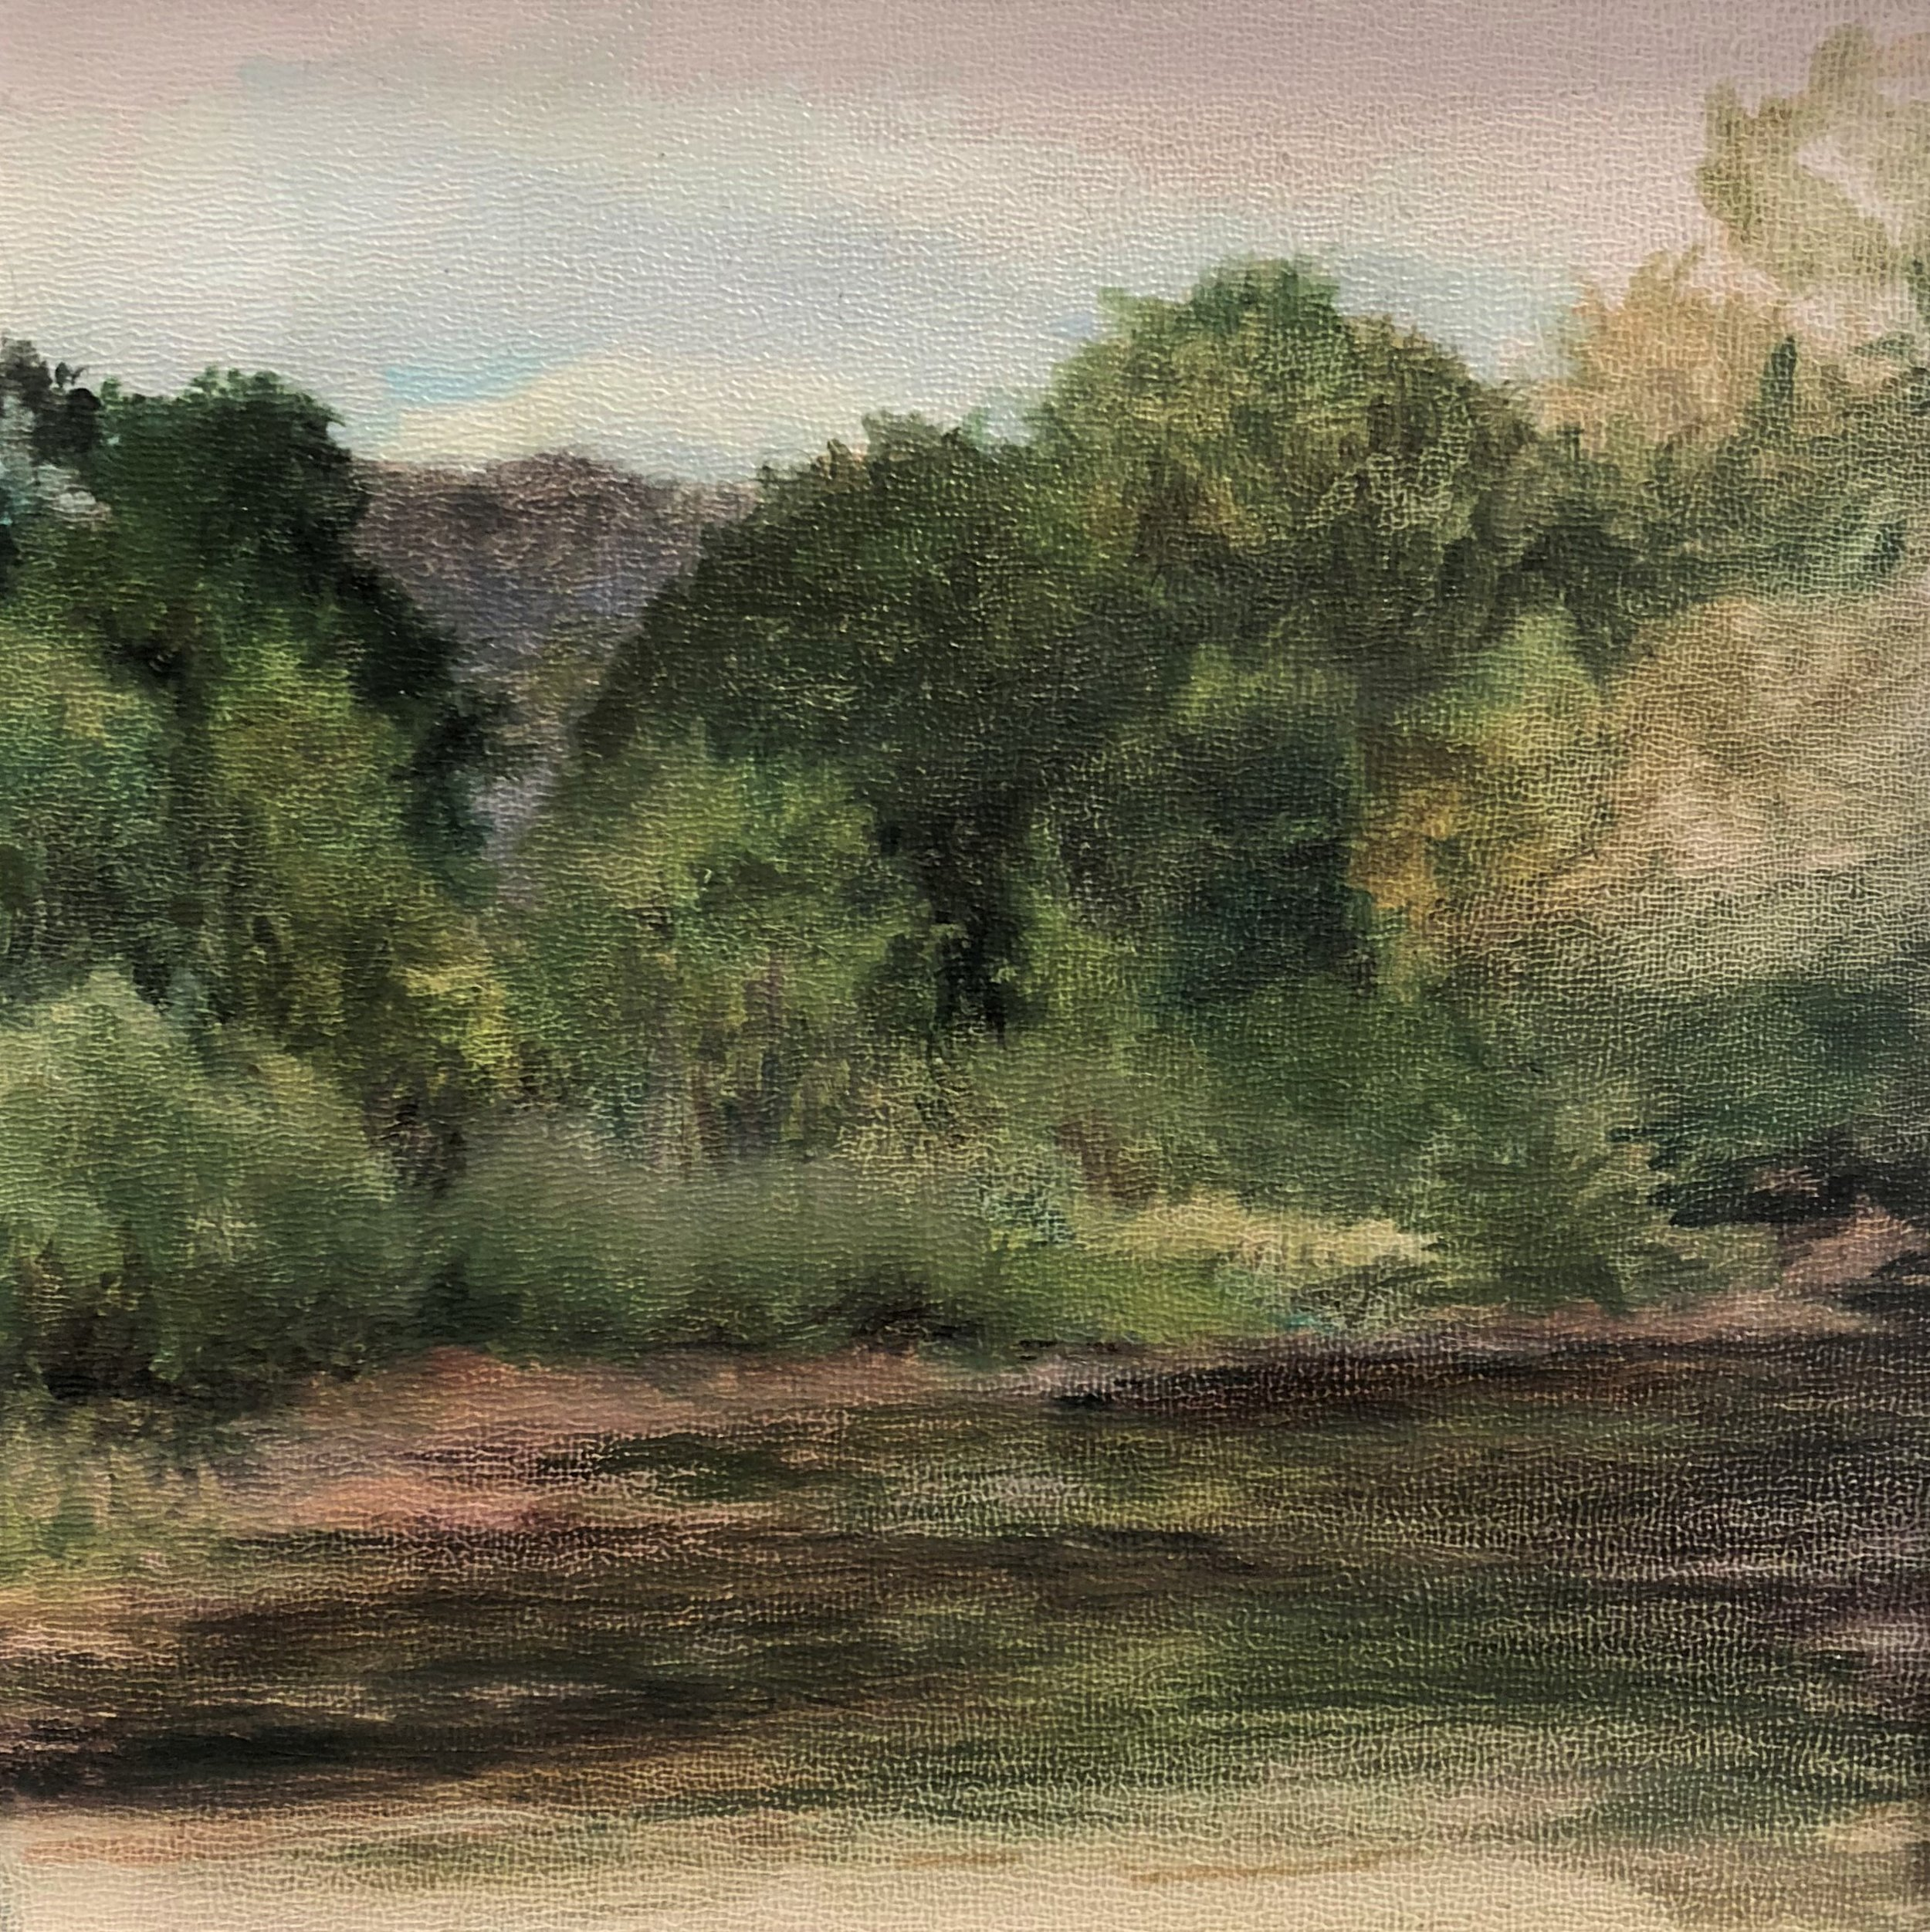 Pecos River in Summer